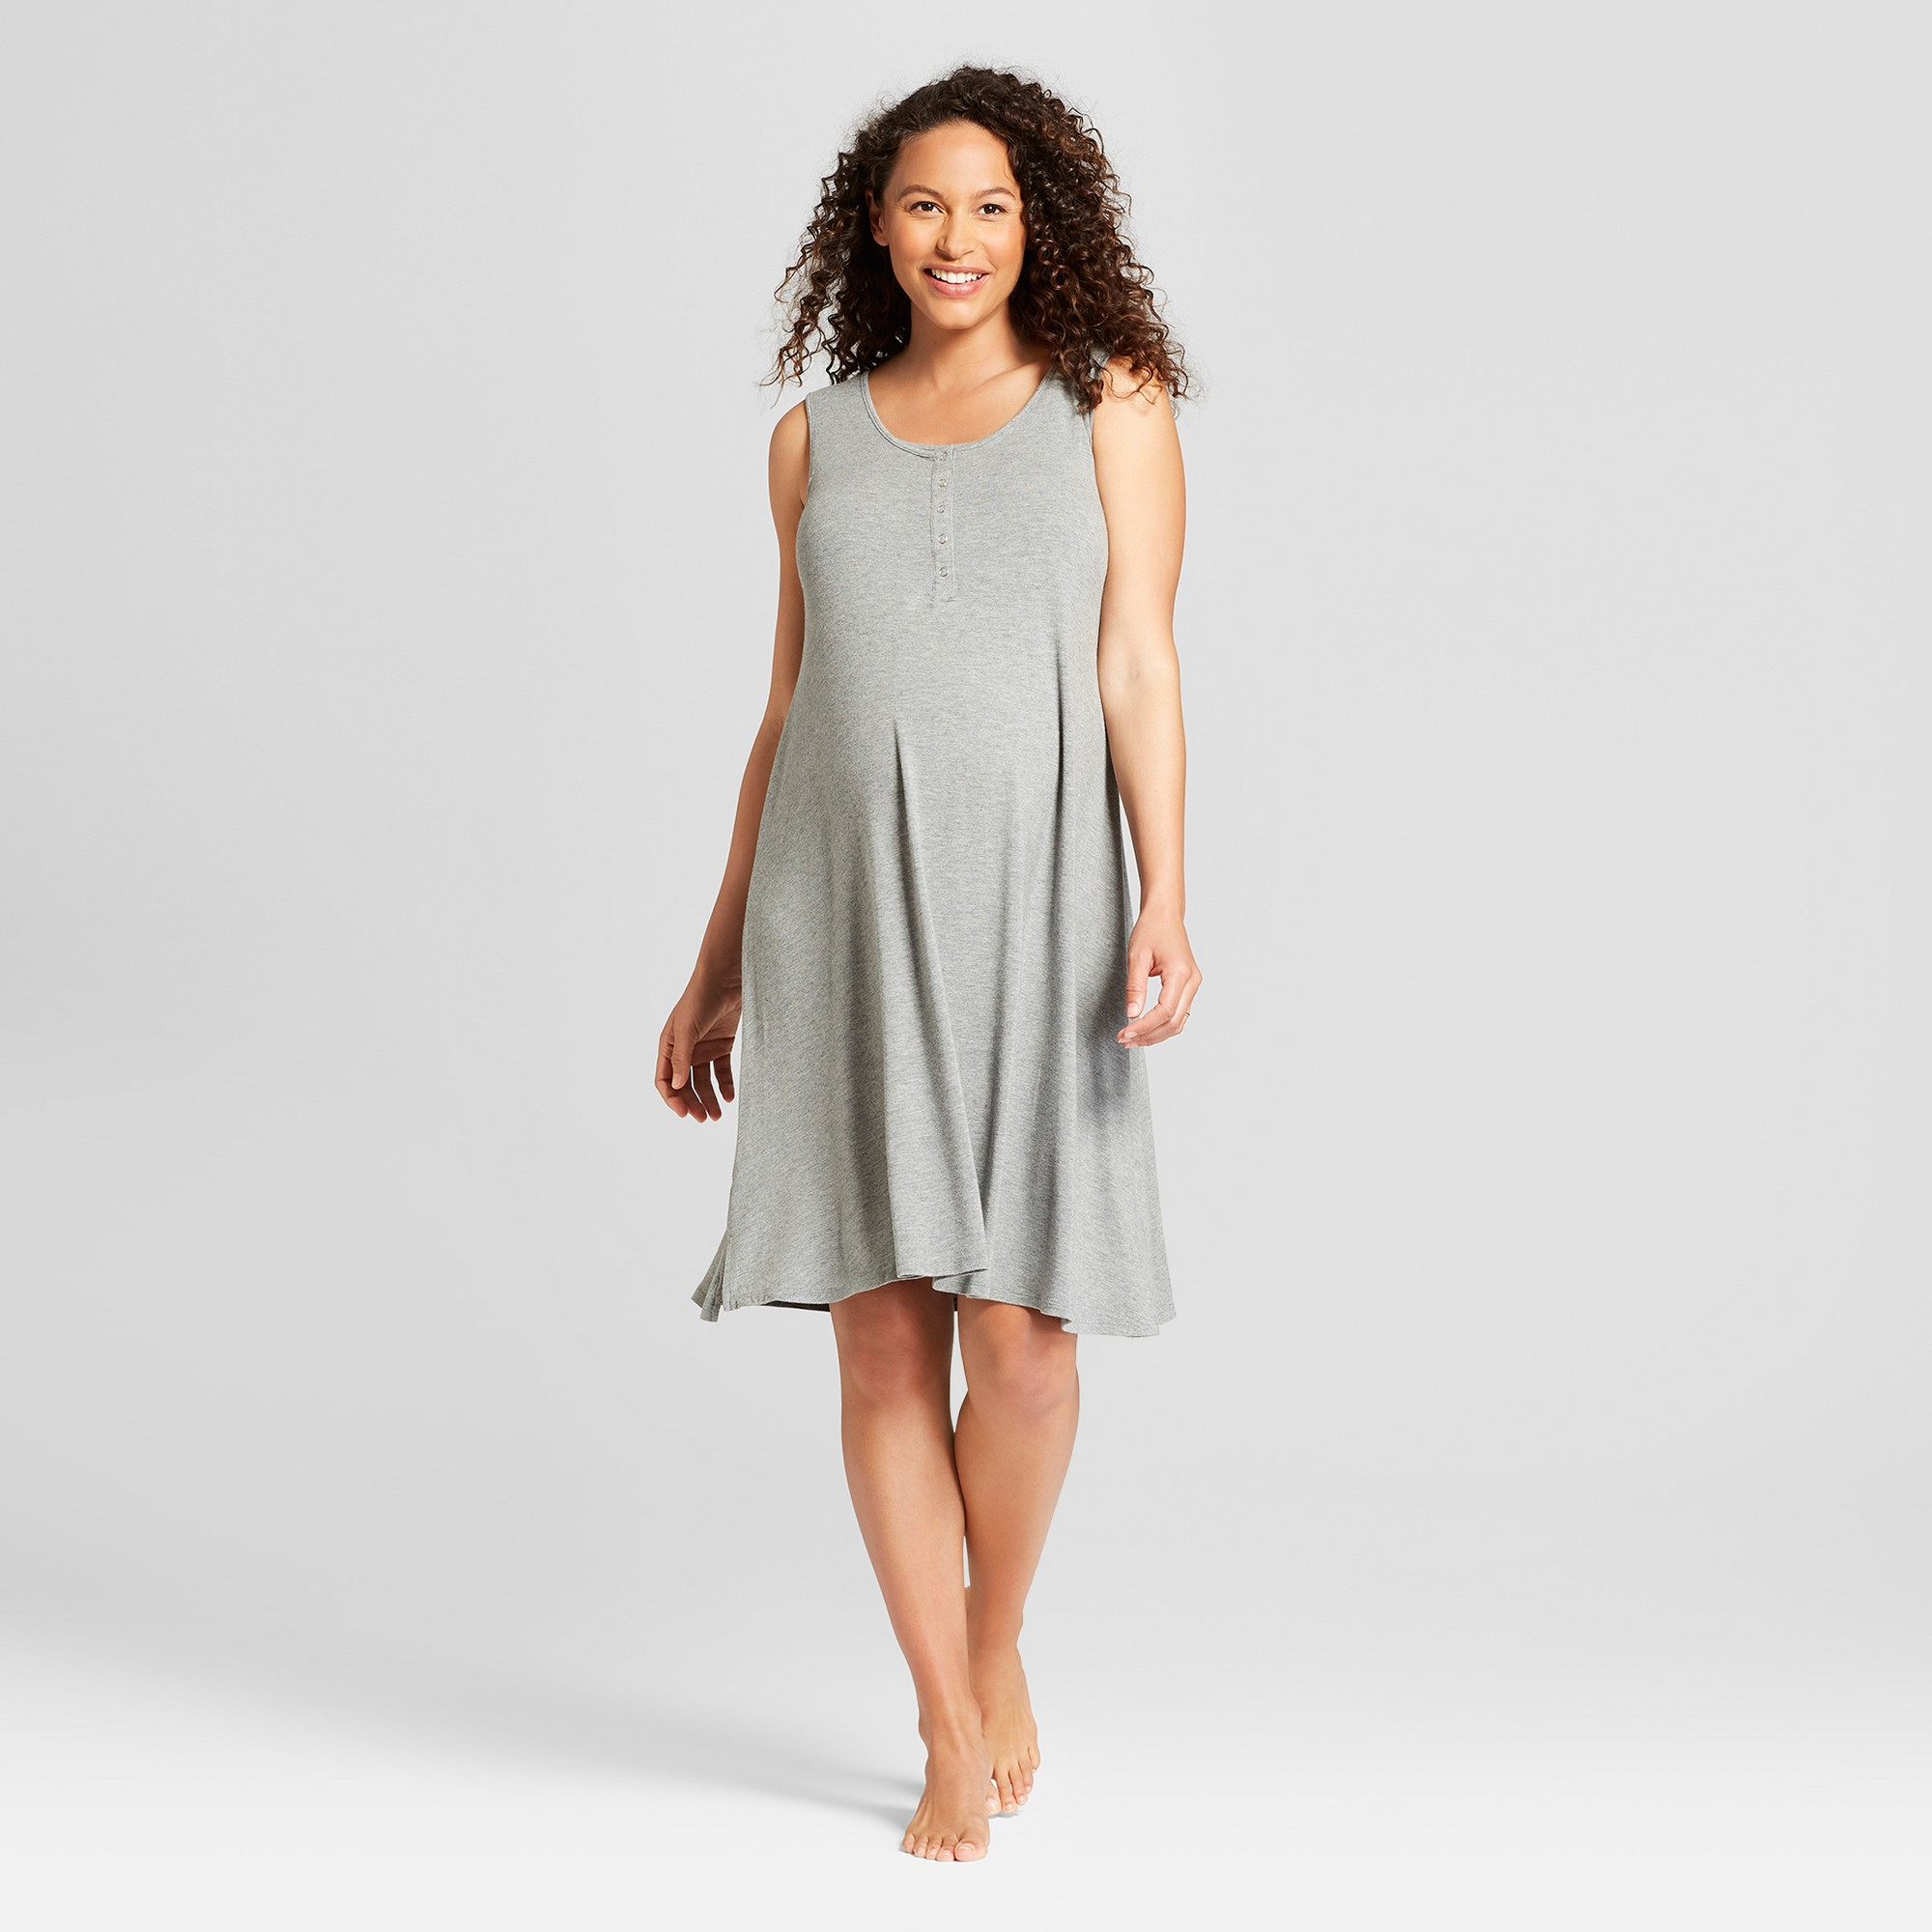 a00a2f838ace9 Maternity Short Sleeve Nursing Henley Dress - Isabel Maternity by Ingrid &  Isabel Medium Heather Gray S